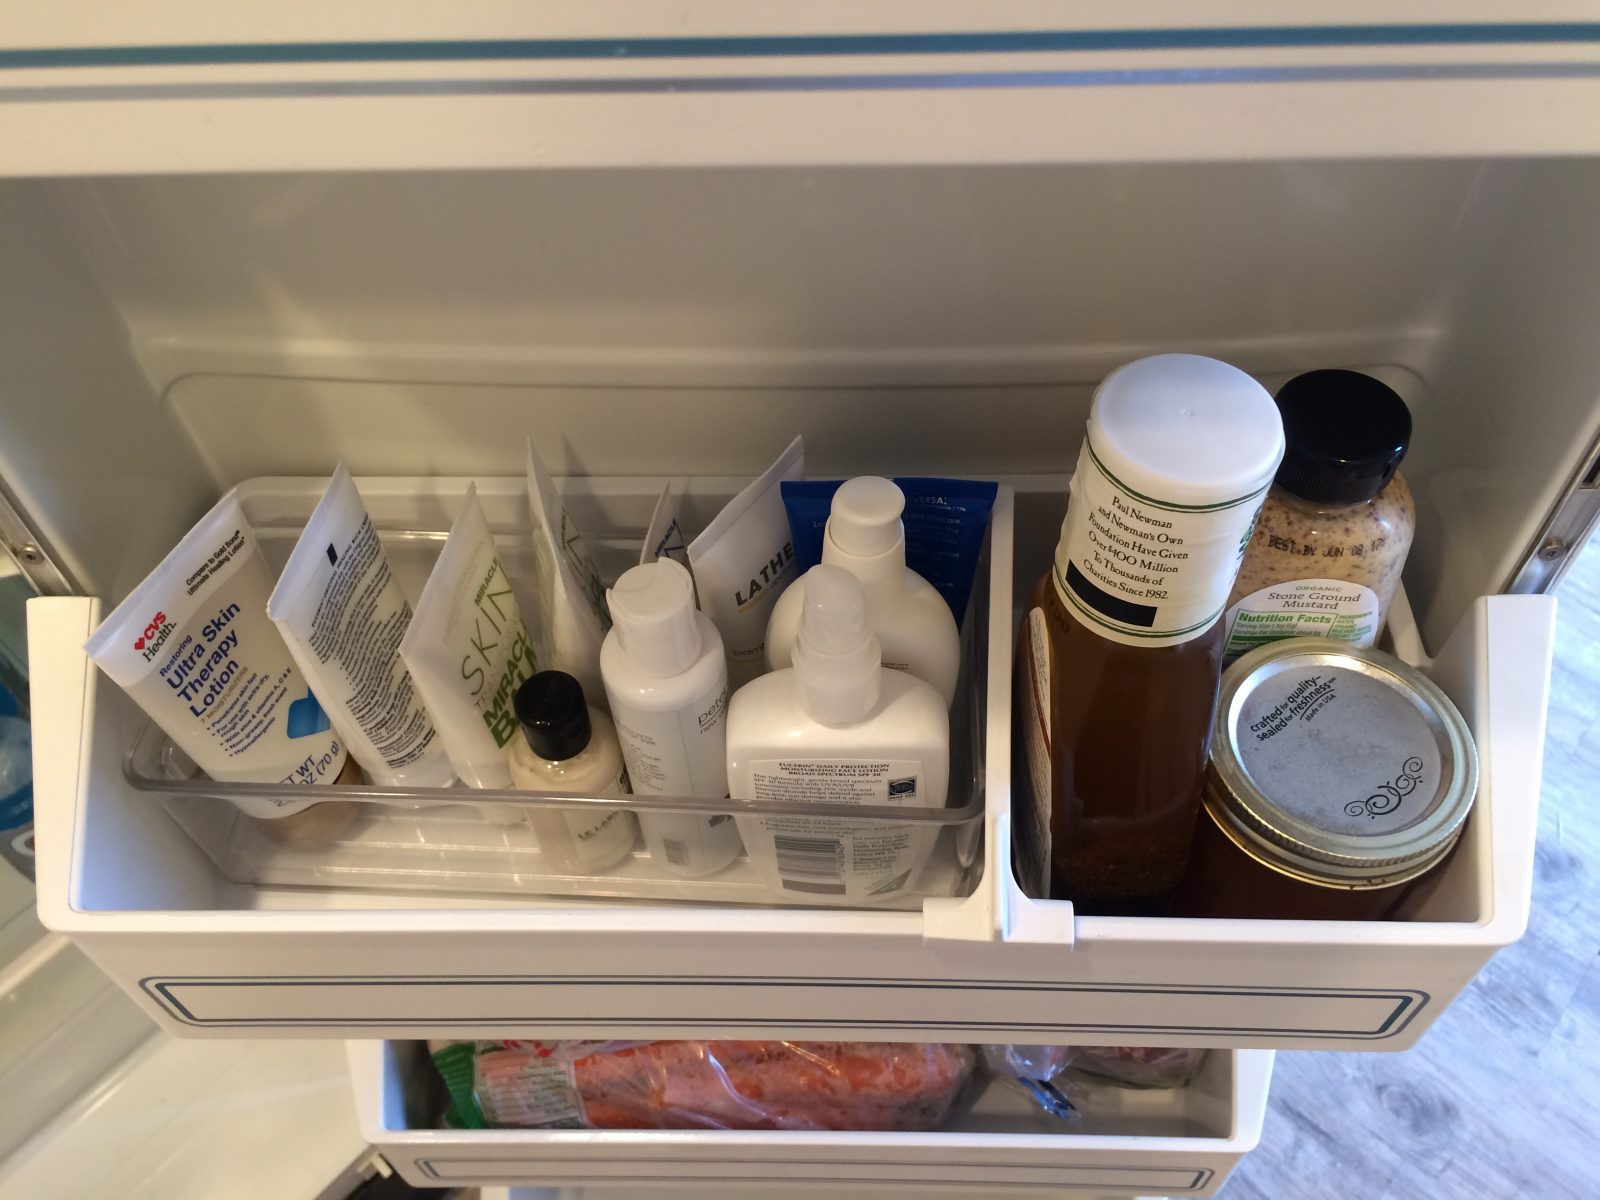 Medicine in Fridge